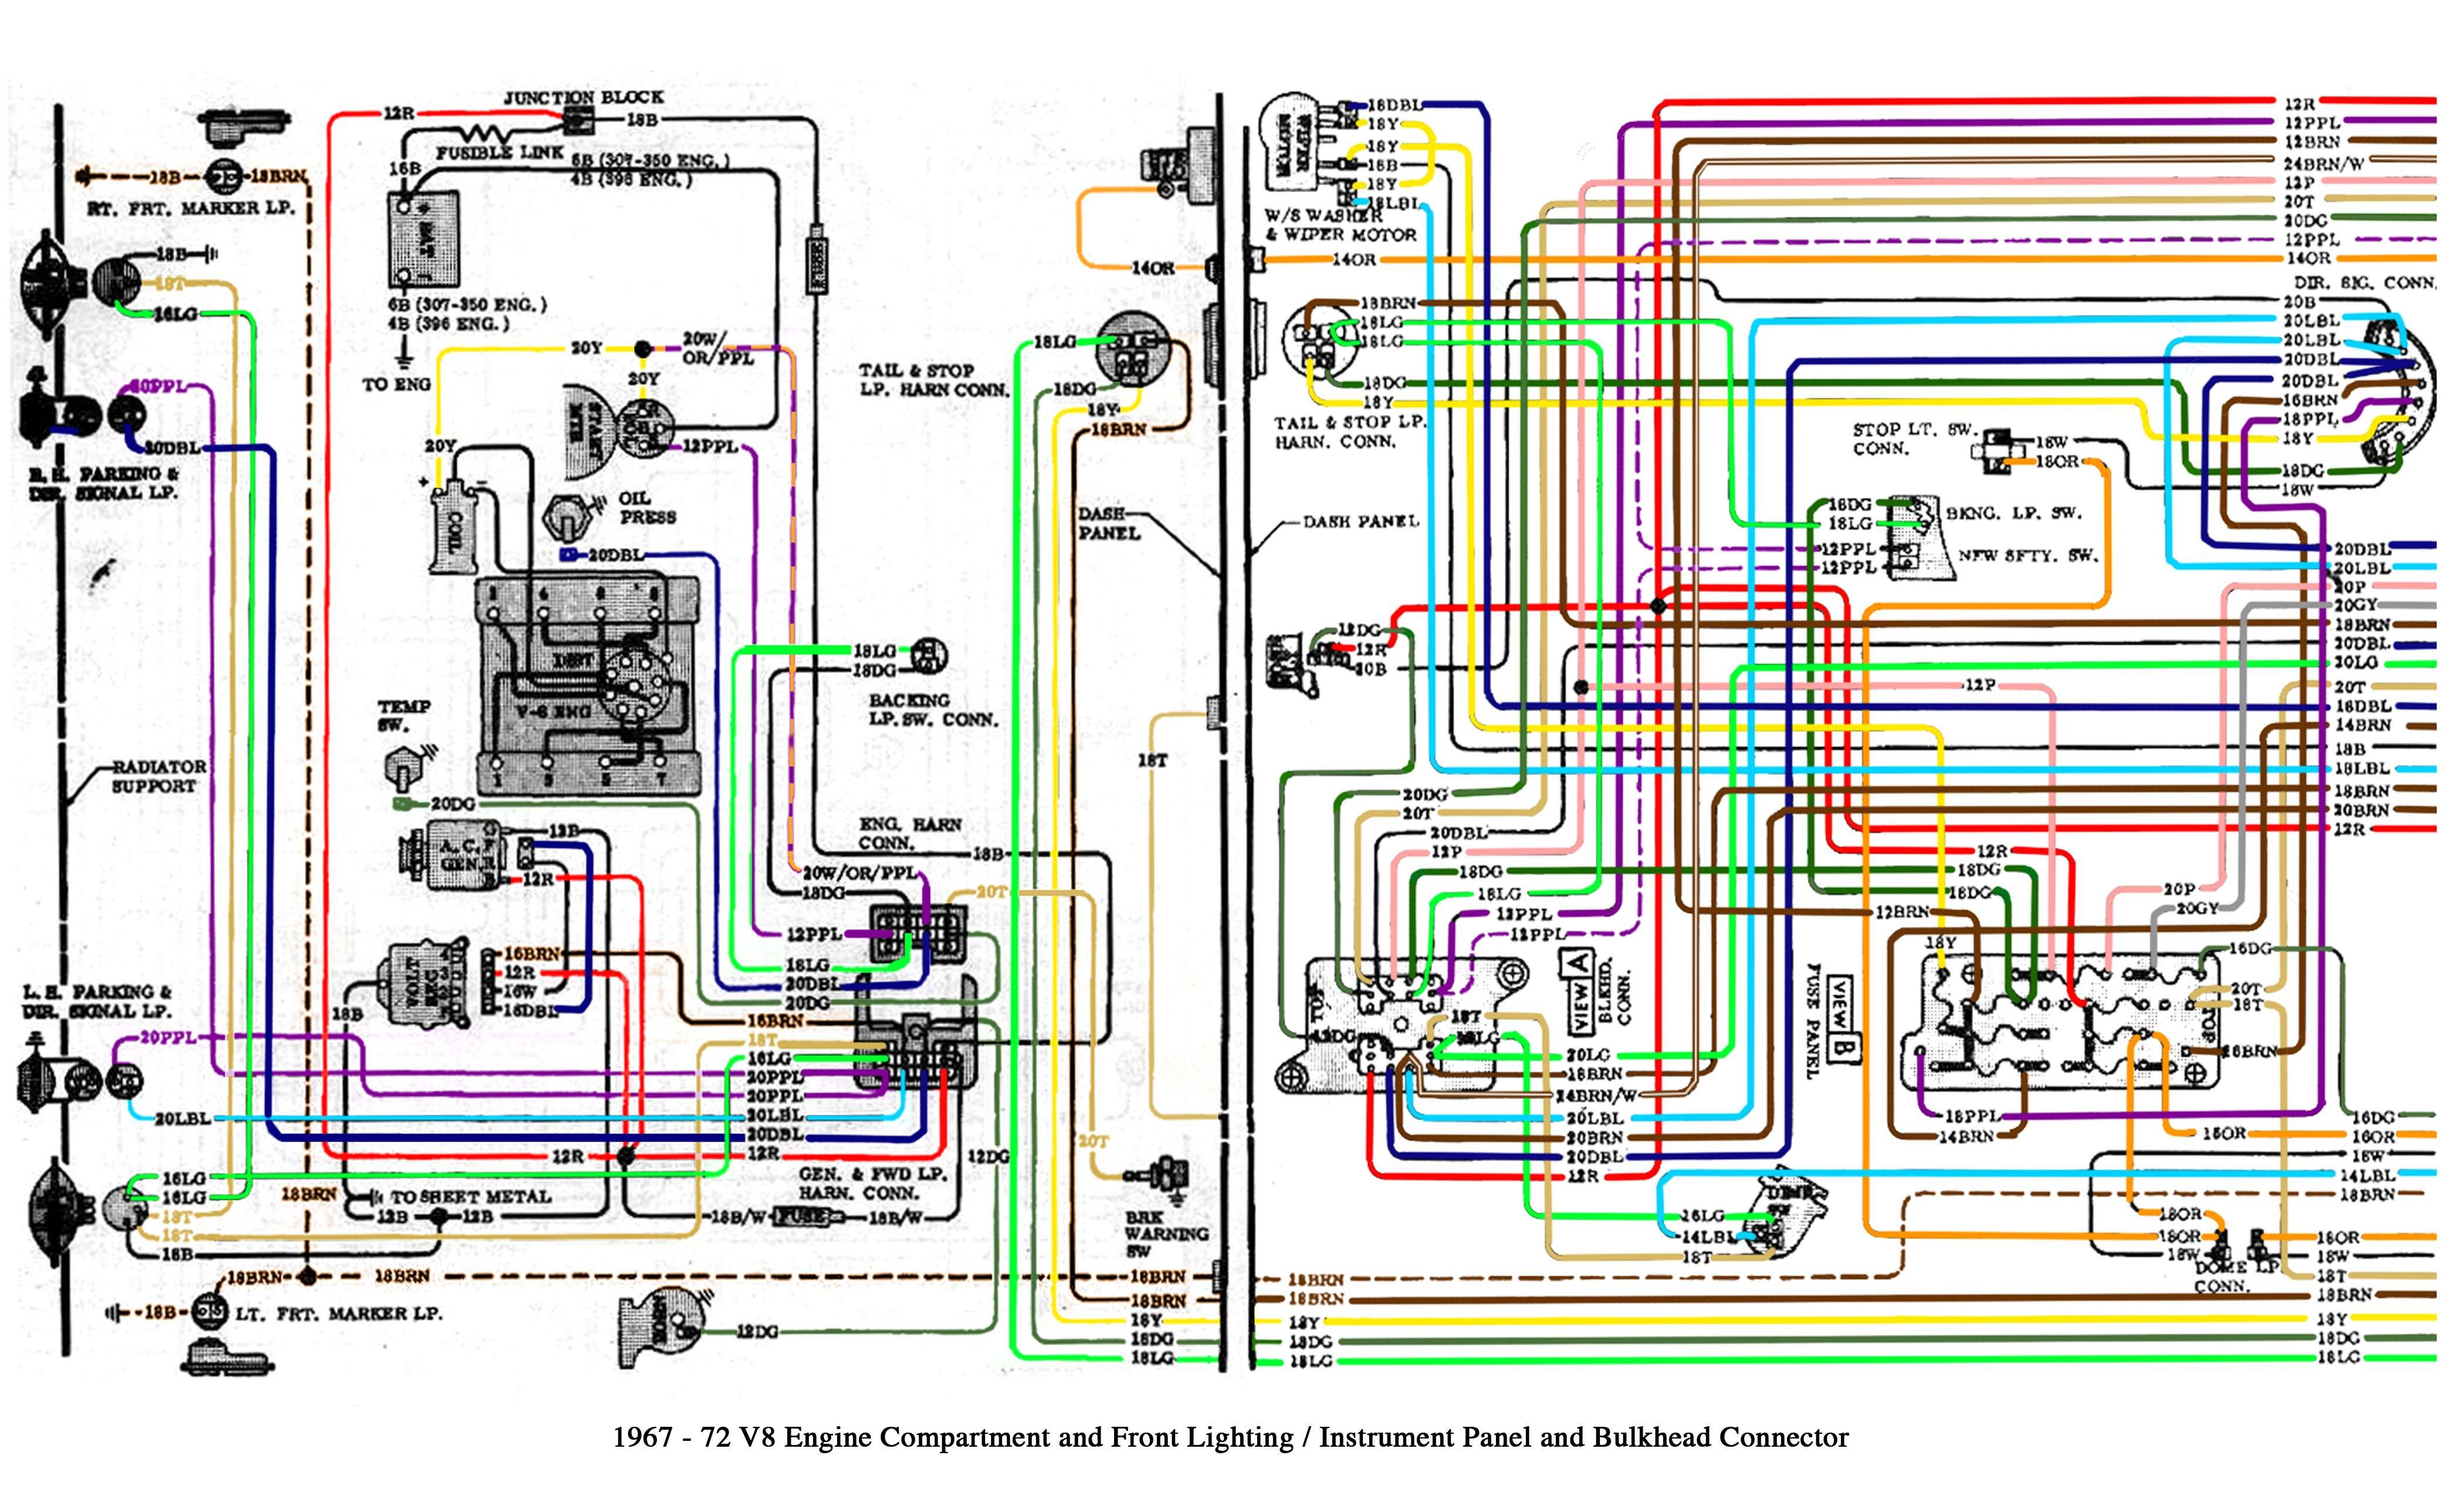 Color Wiring Diagram Finished The 1947 Present Chevrolet Gmc Throughout 1972 Chevy Truck 72 Chevy Truck Chevy S10 Chevy Trucks